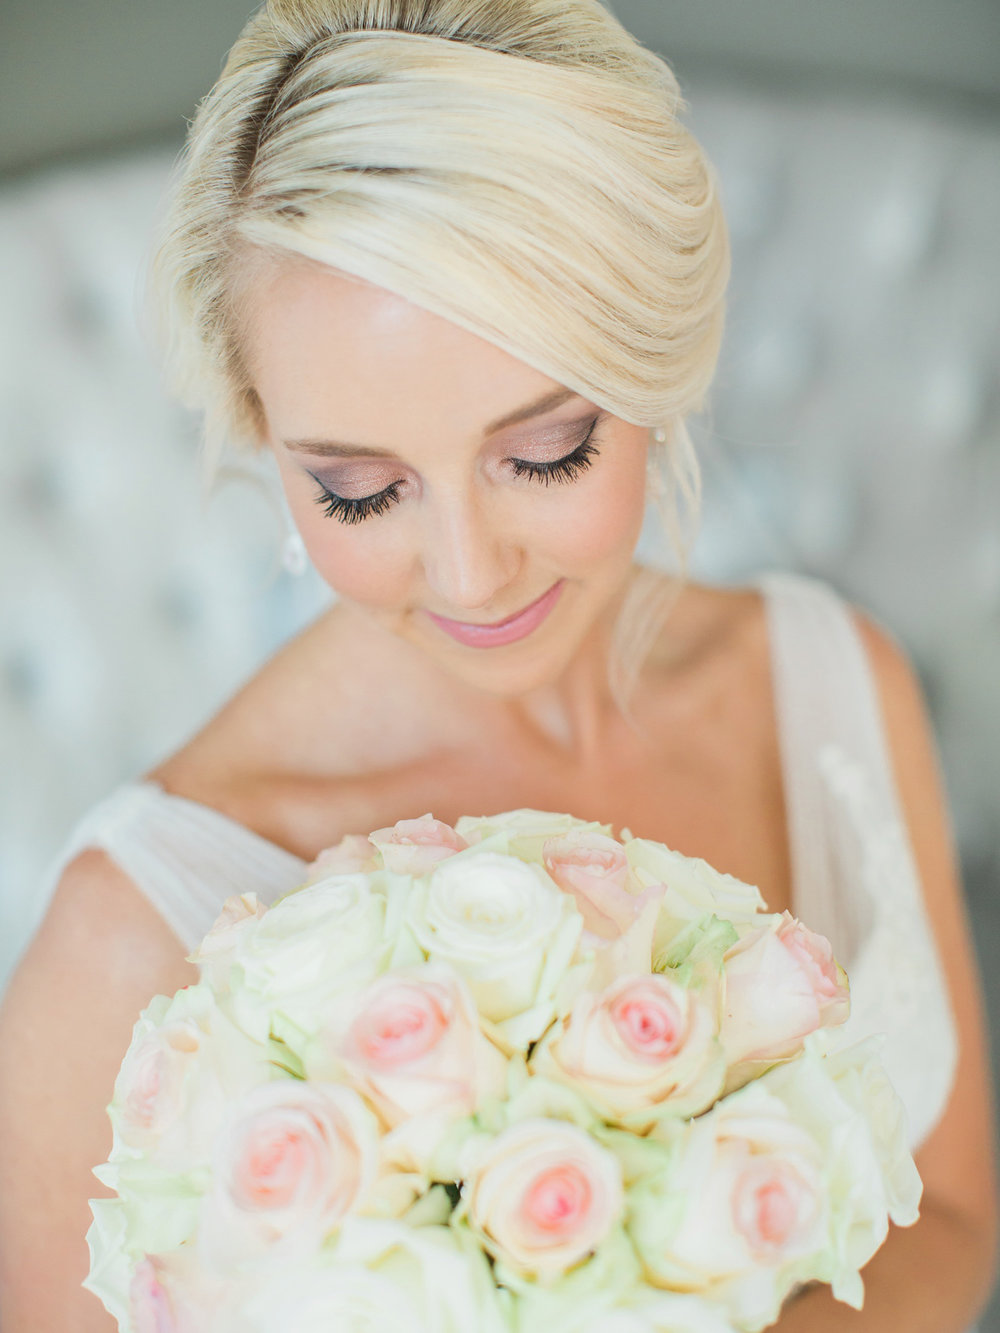 dana's floral design_birmingham wedding photographer_montgomery alabama wedding photographer_destin rosemary alys beach 30A florida luxury wedding photographer_rose bouquet